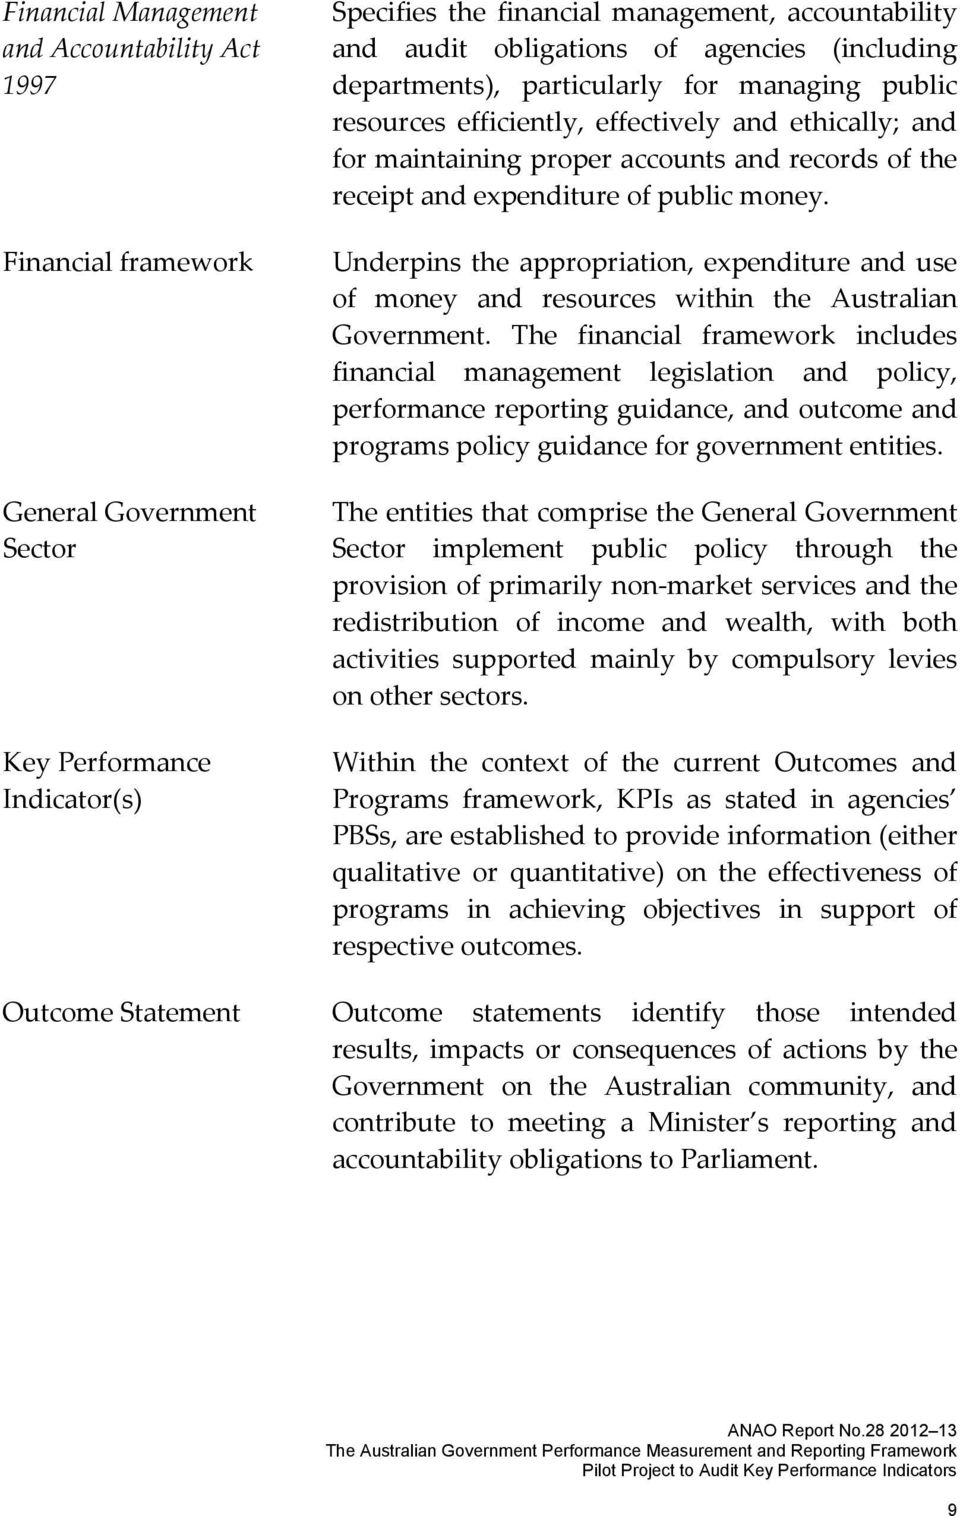 public money. Underpins the appropriation, expenditure and use of money and resources within the Australian Government.